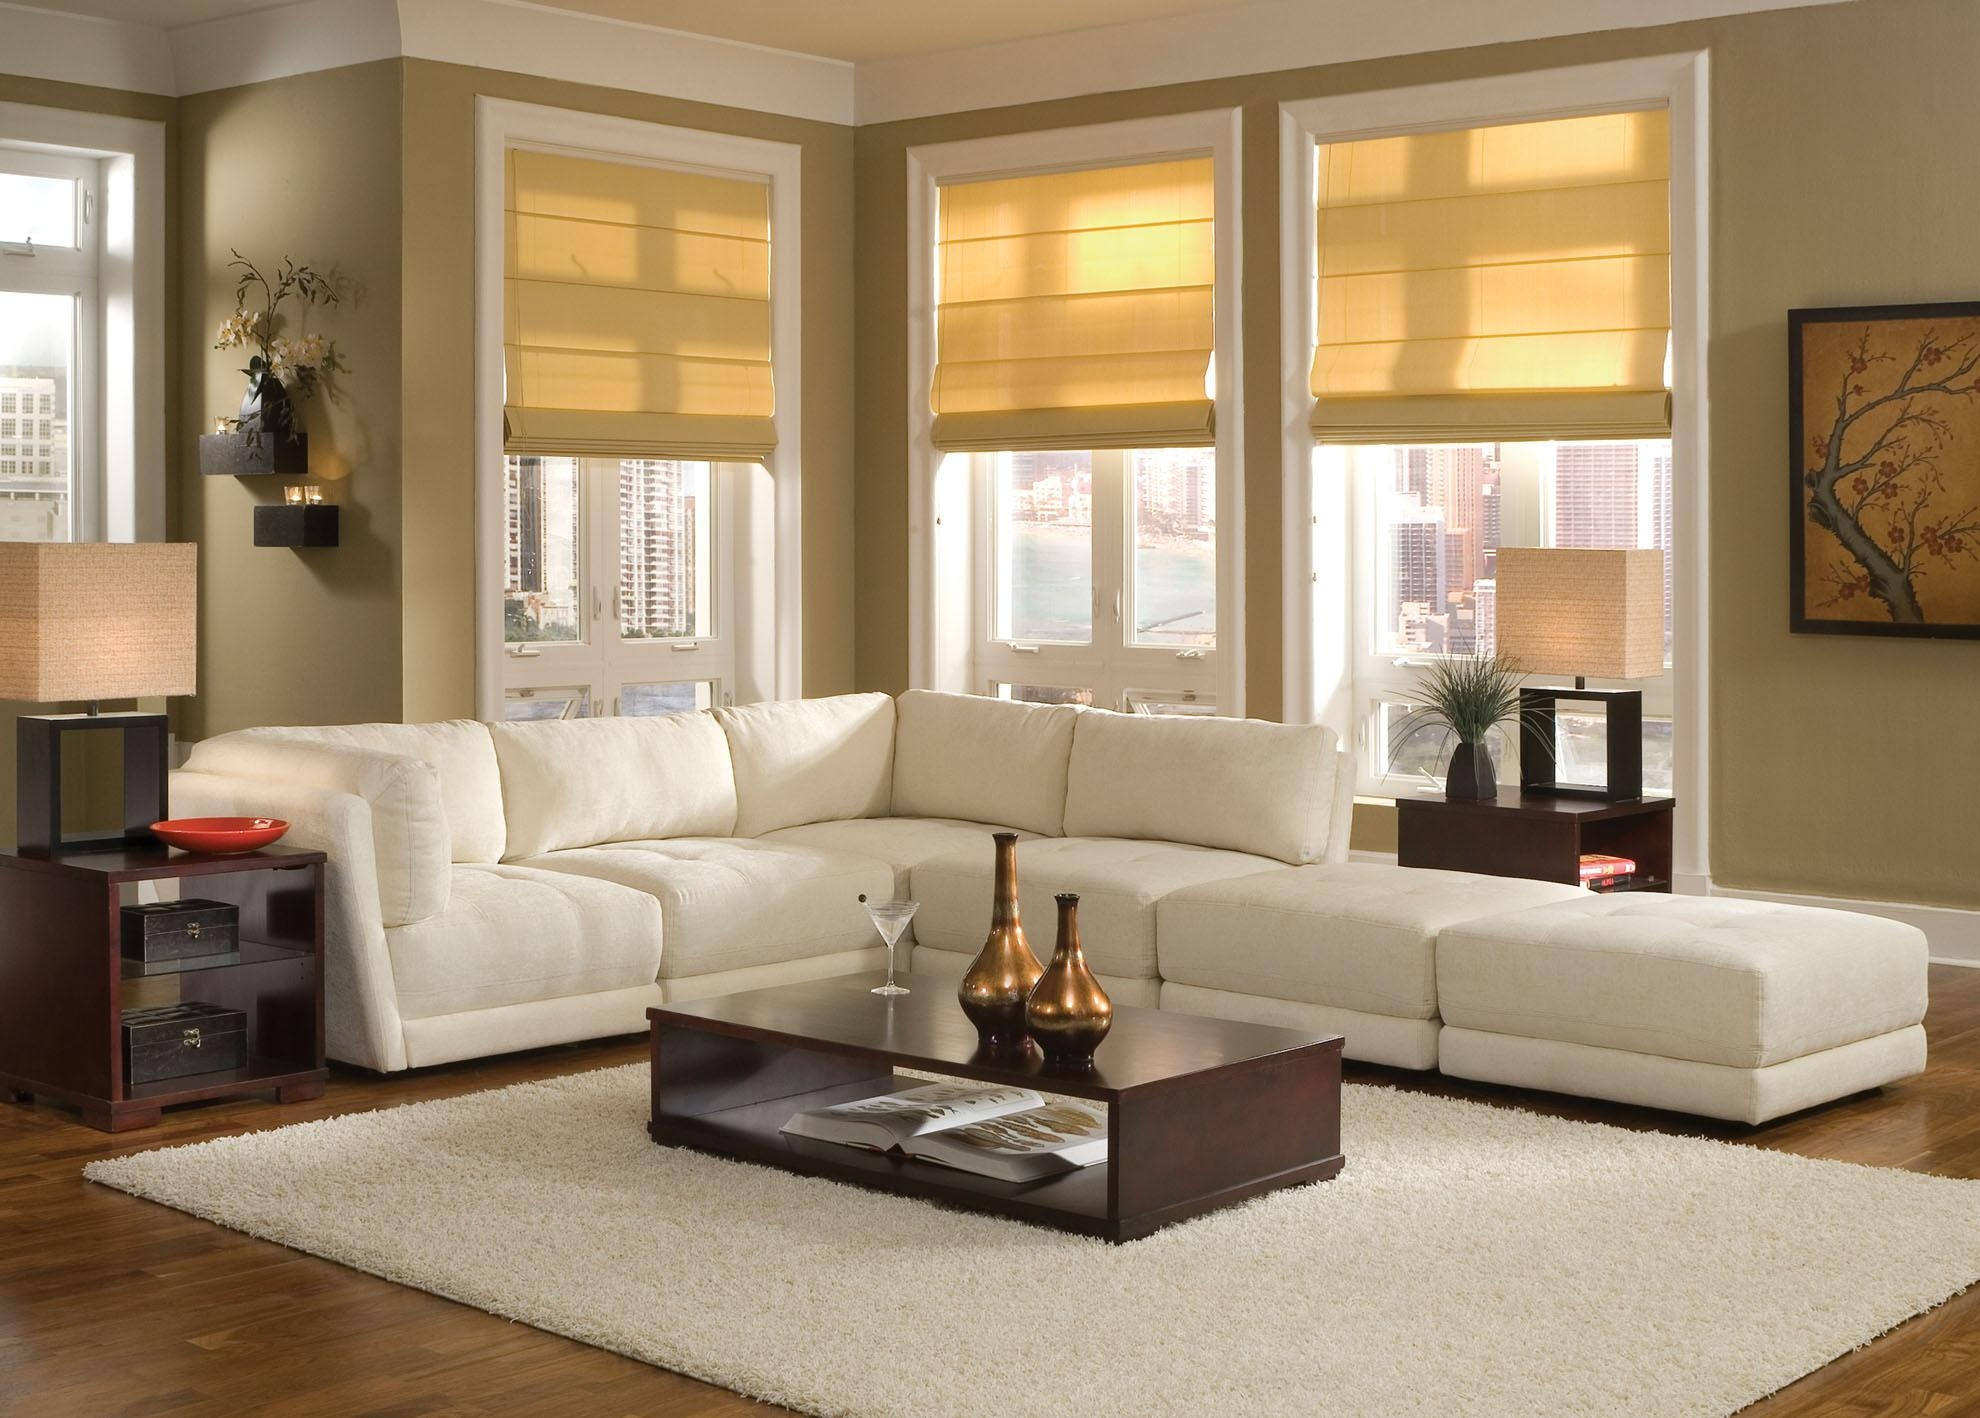 White Sofa Design Ideas & Pictures For Living Room Within Small Lounge Sofas (Image 20 of 20)